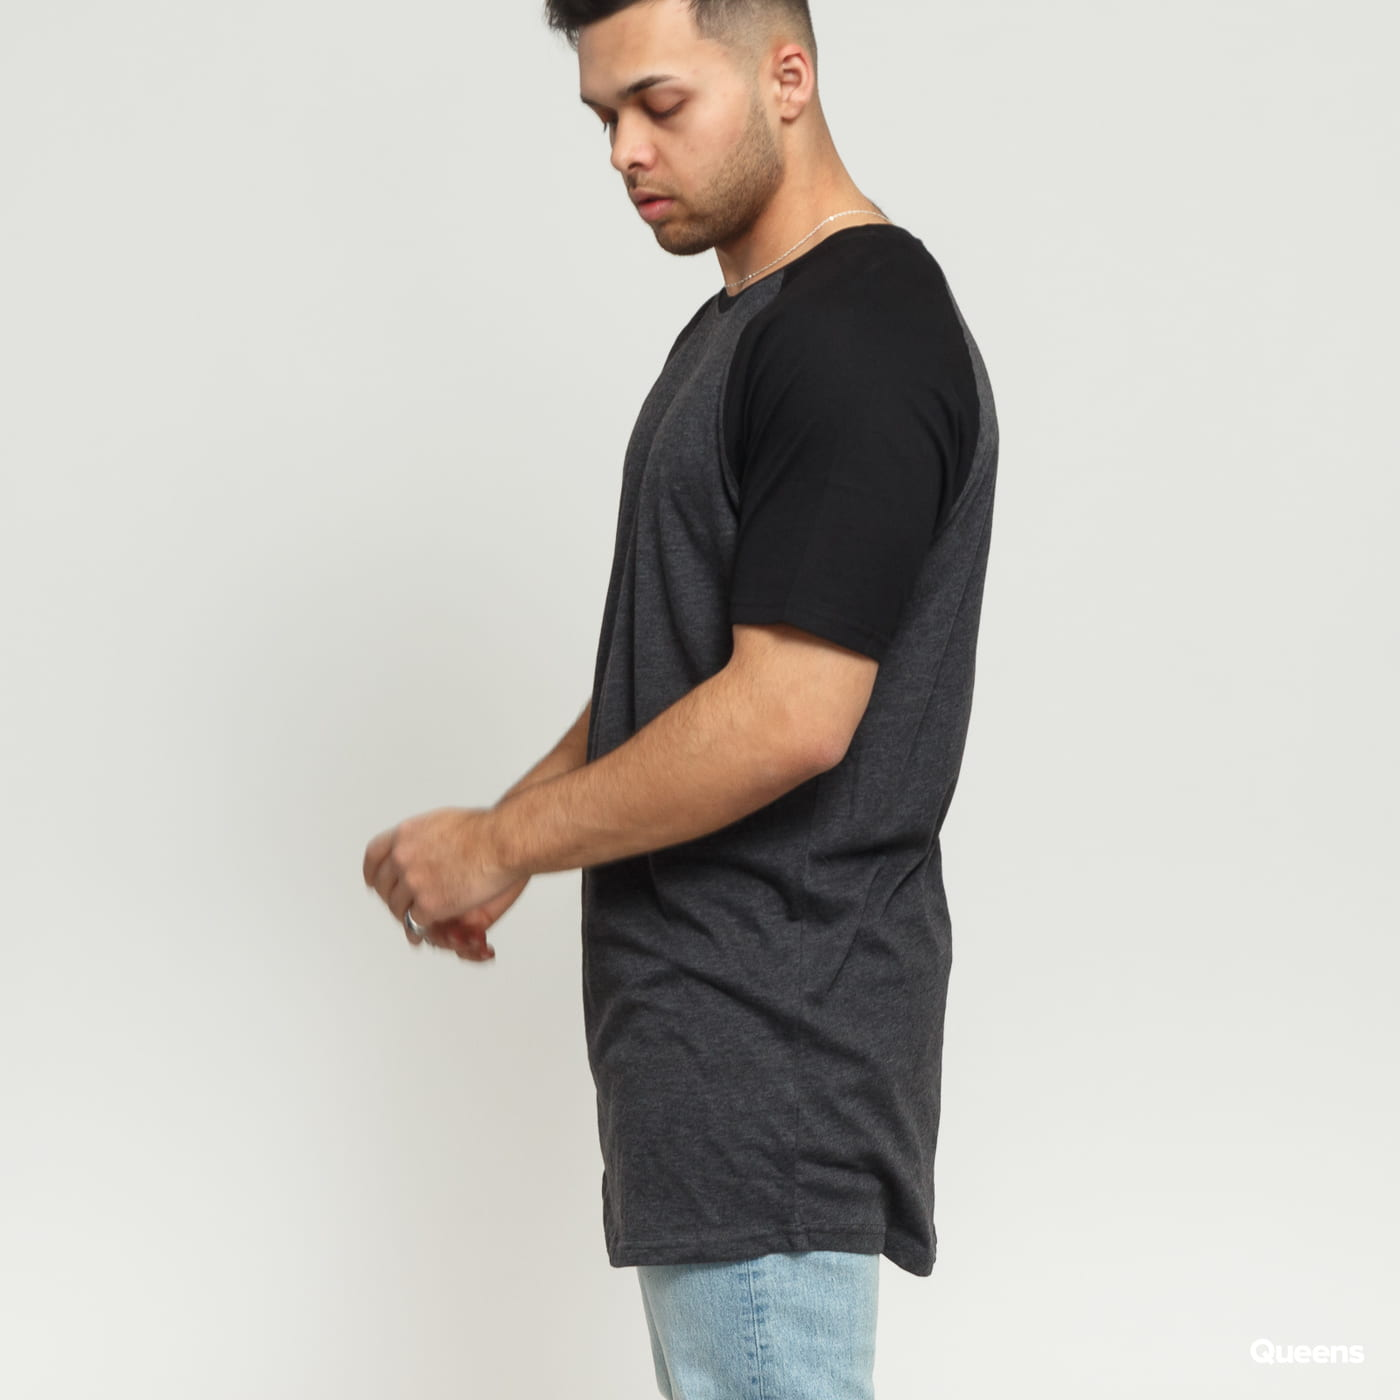 Urban Classics Shaped Raglan Long Tee dark gray / black